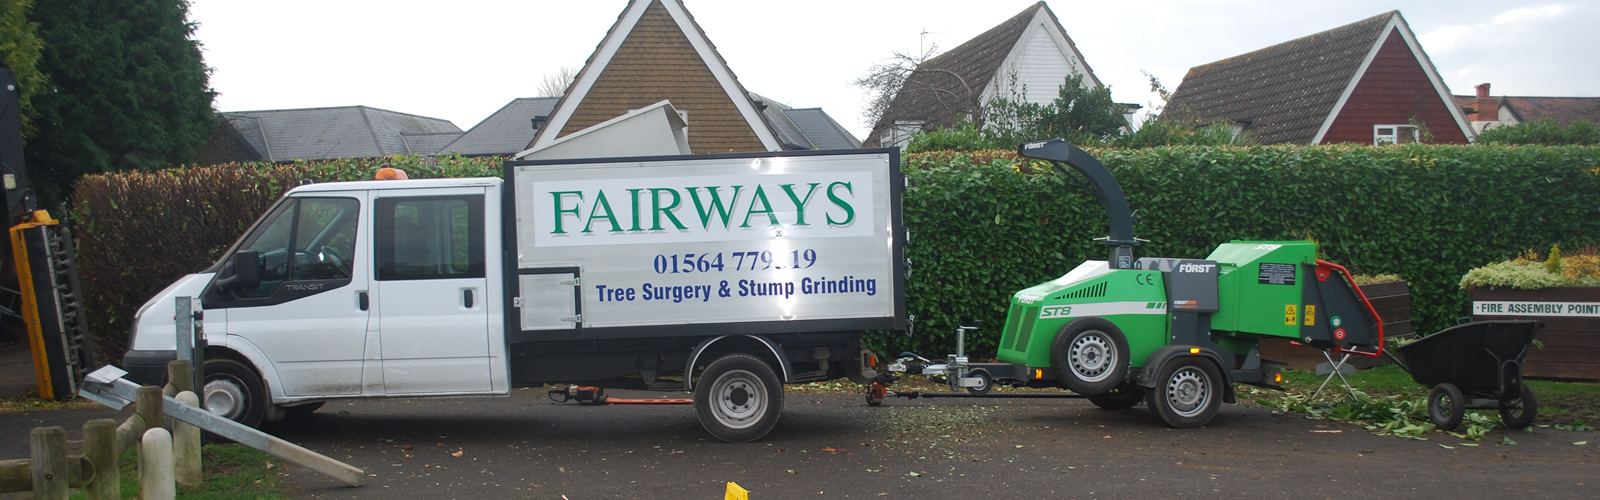 Fairways Solihull